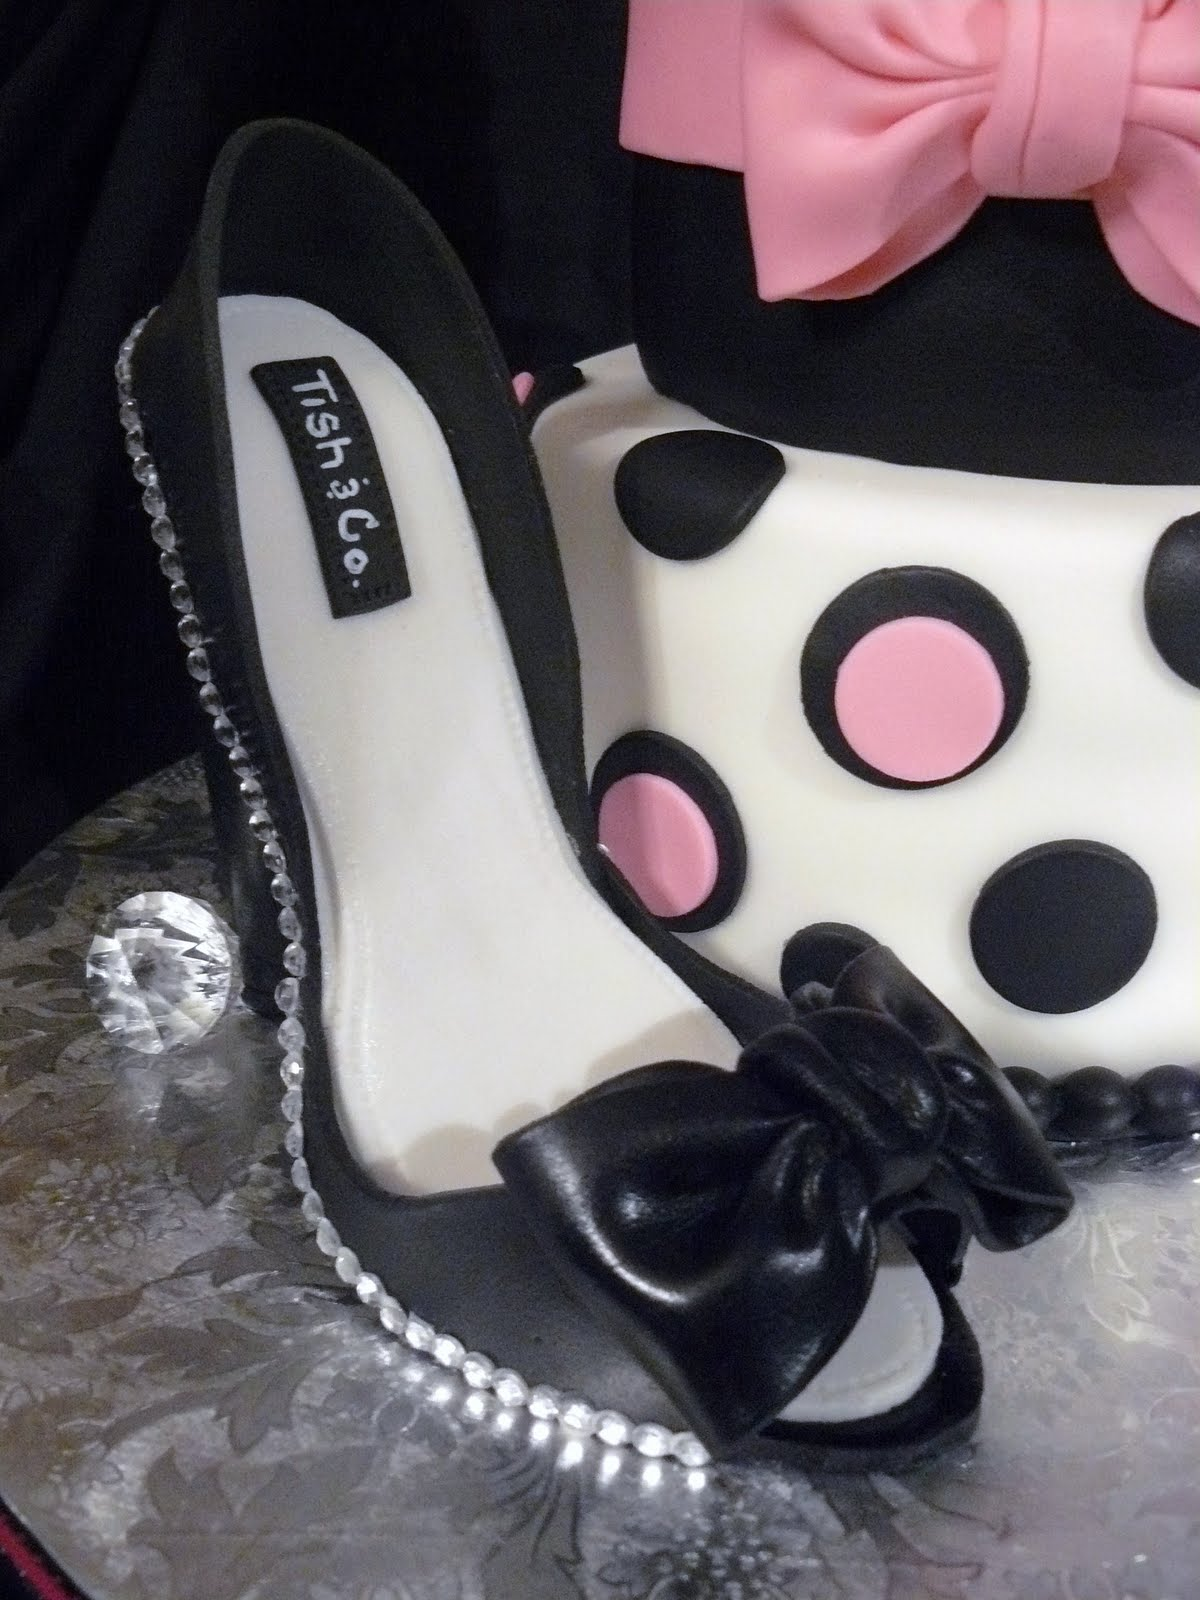 Karen Dreams Of Cake Does That Come In My Size Inside Heels Black Where Were Cakes Like This When I Turned 20 The Label Shoe Was Designed With Birthday Girl Mind It Is Her Name